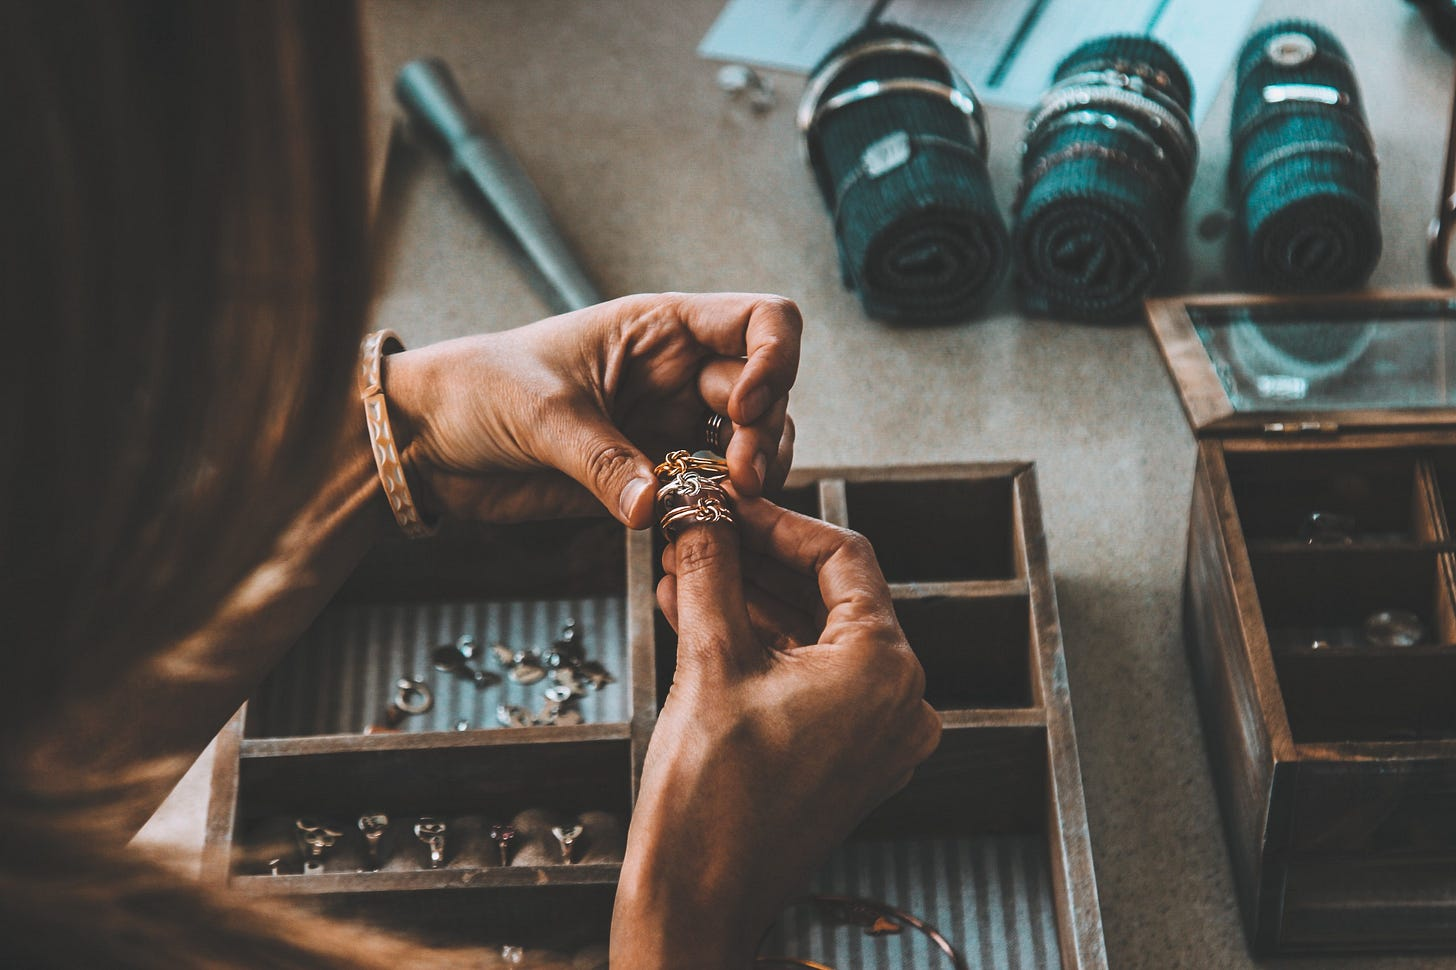 black woman's hands making jewellery for article by Larry G. Maguire